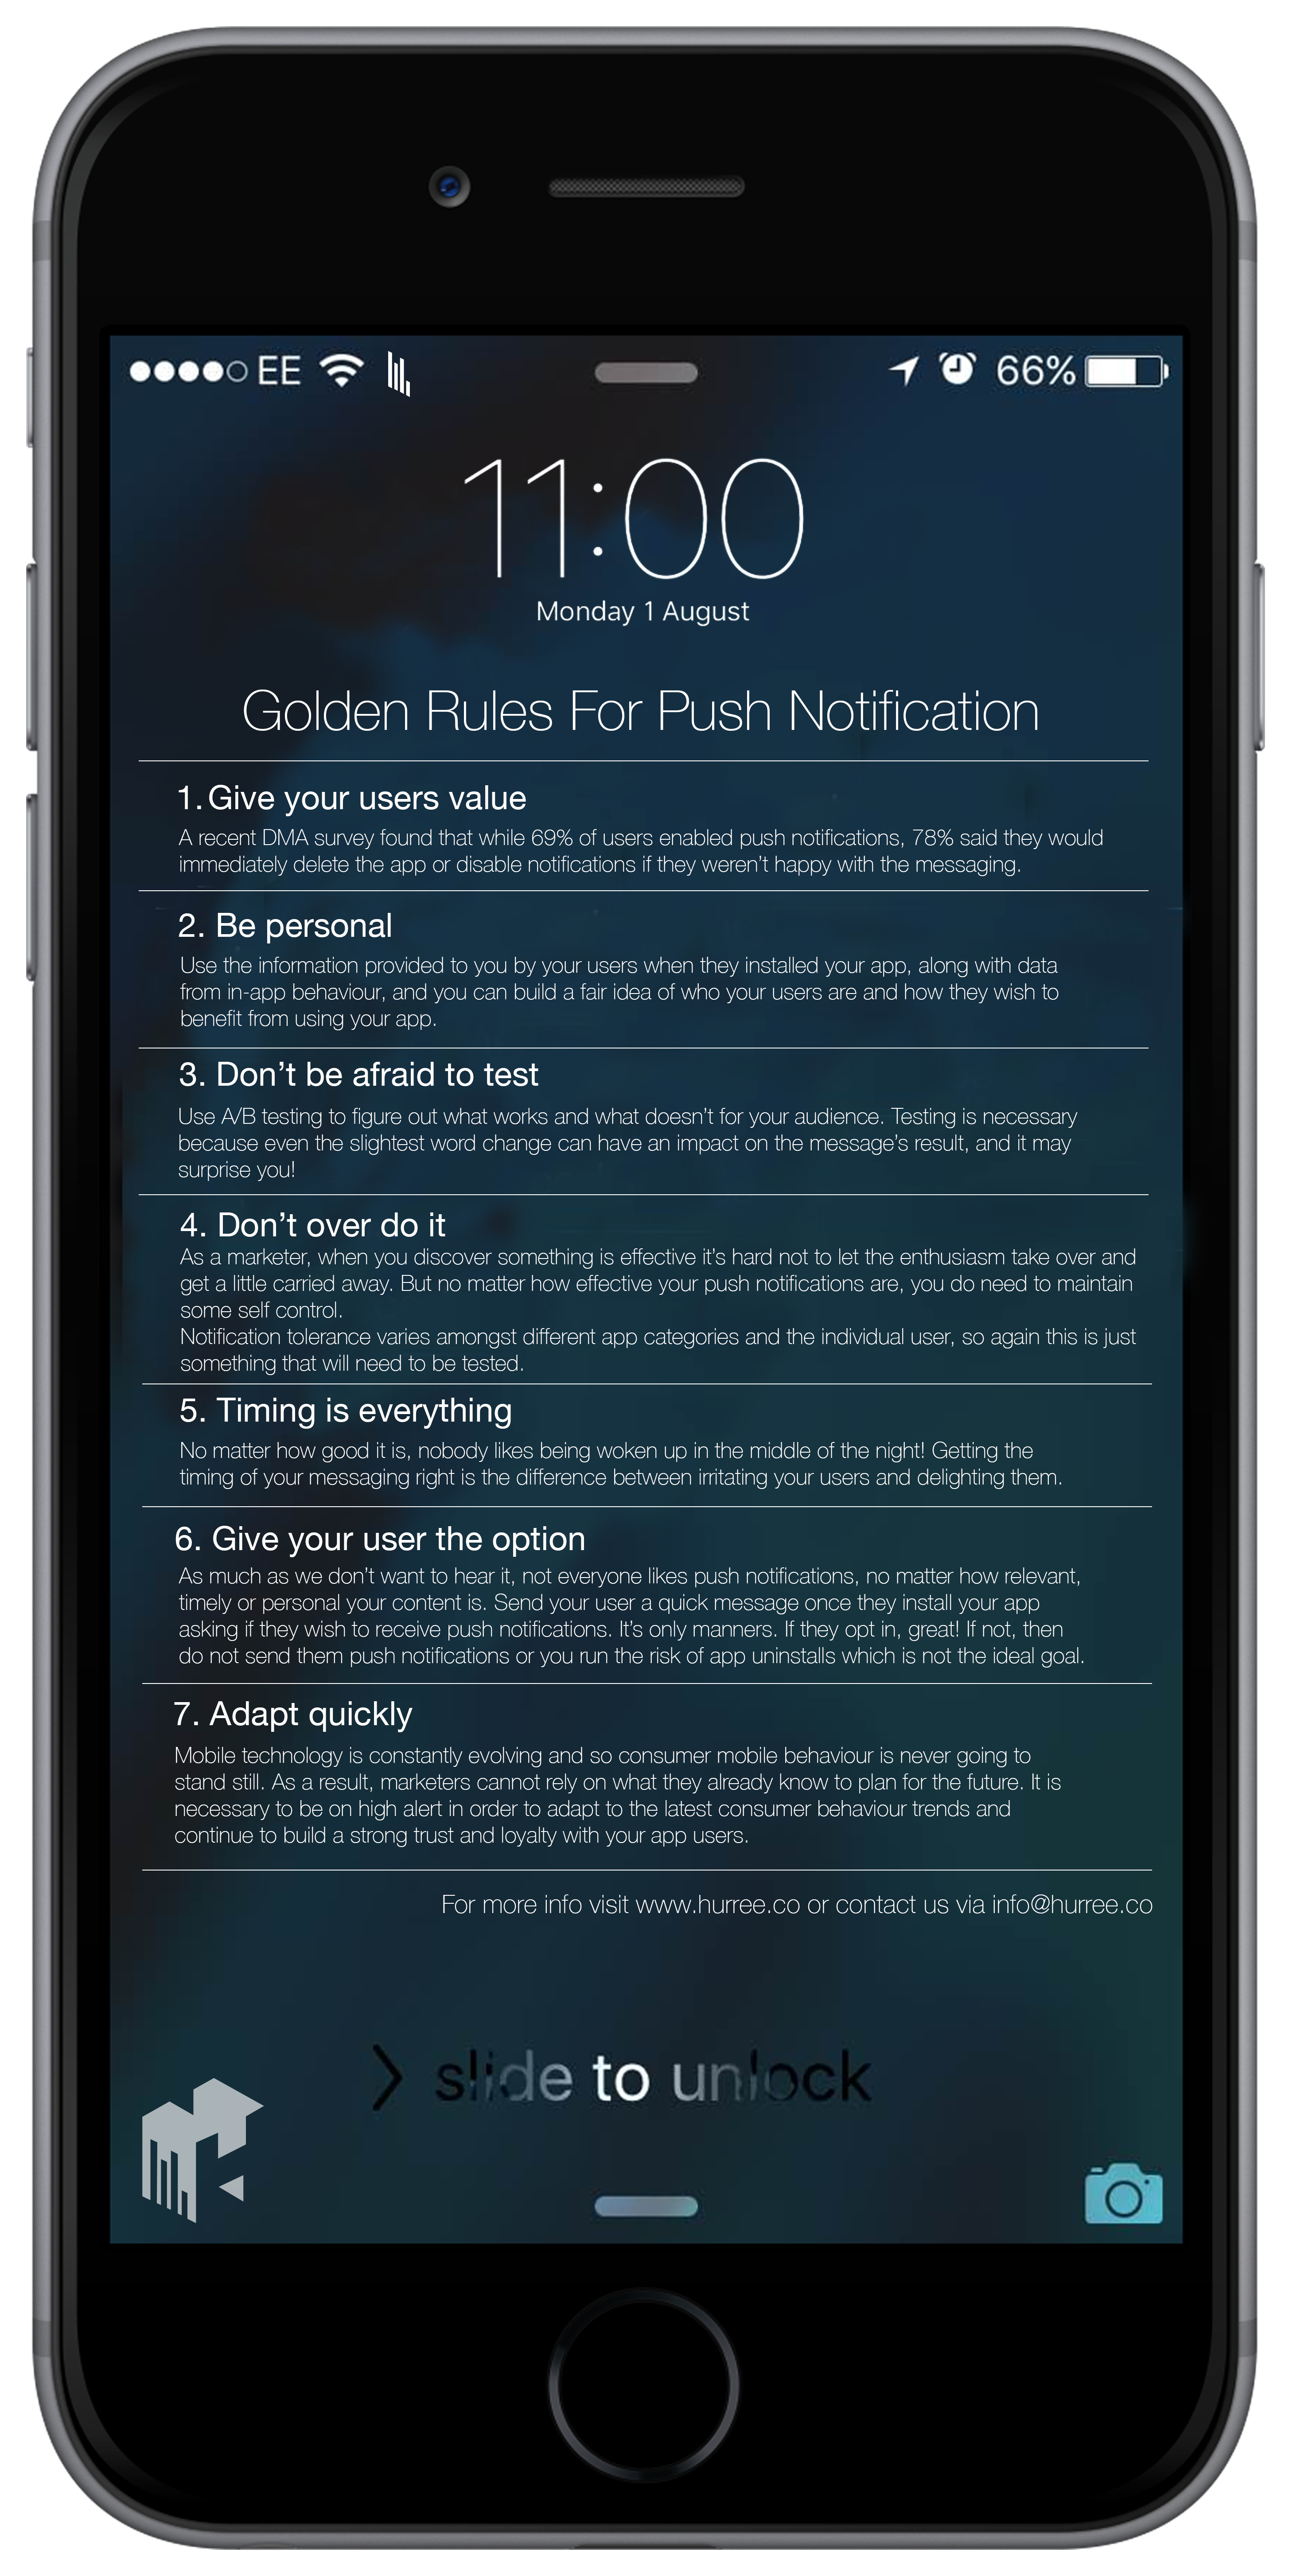 push-notification-infographic.png